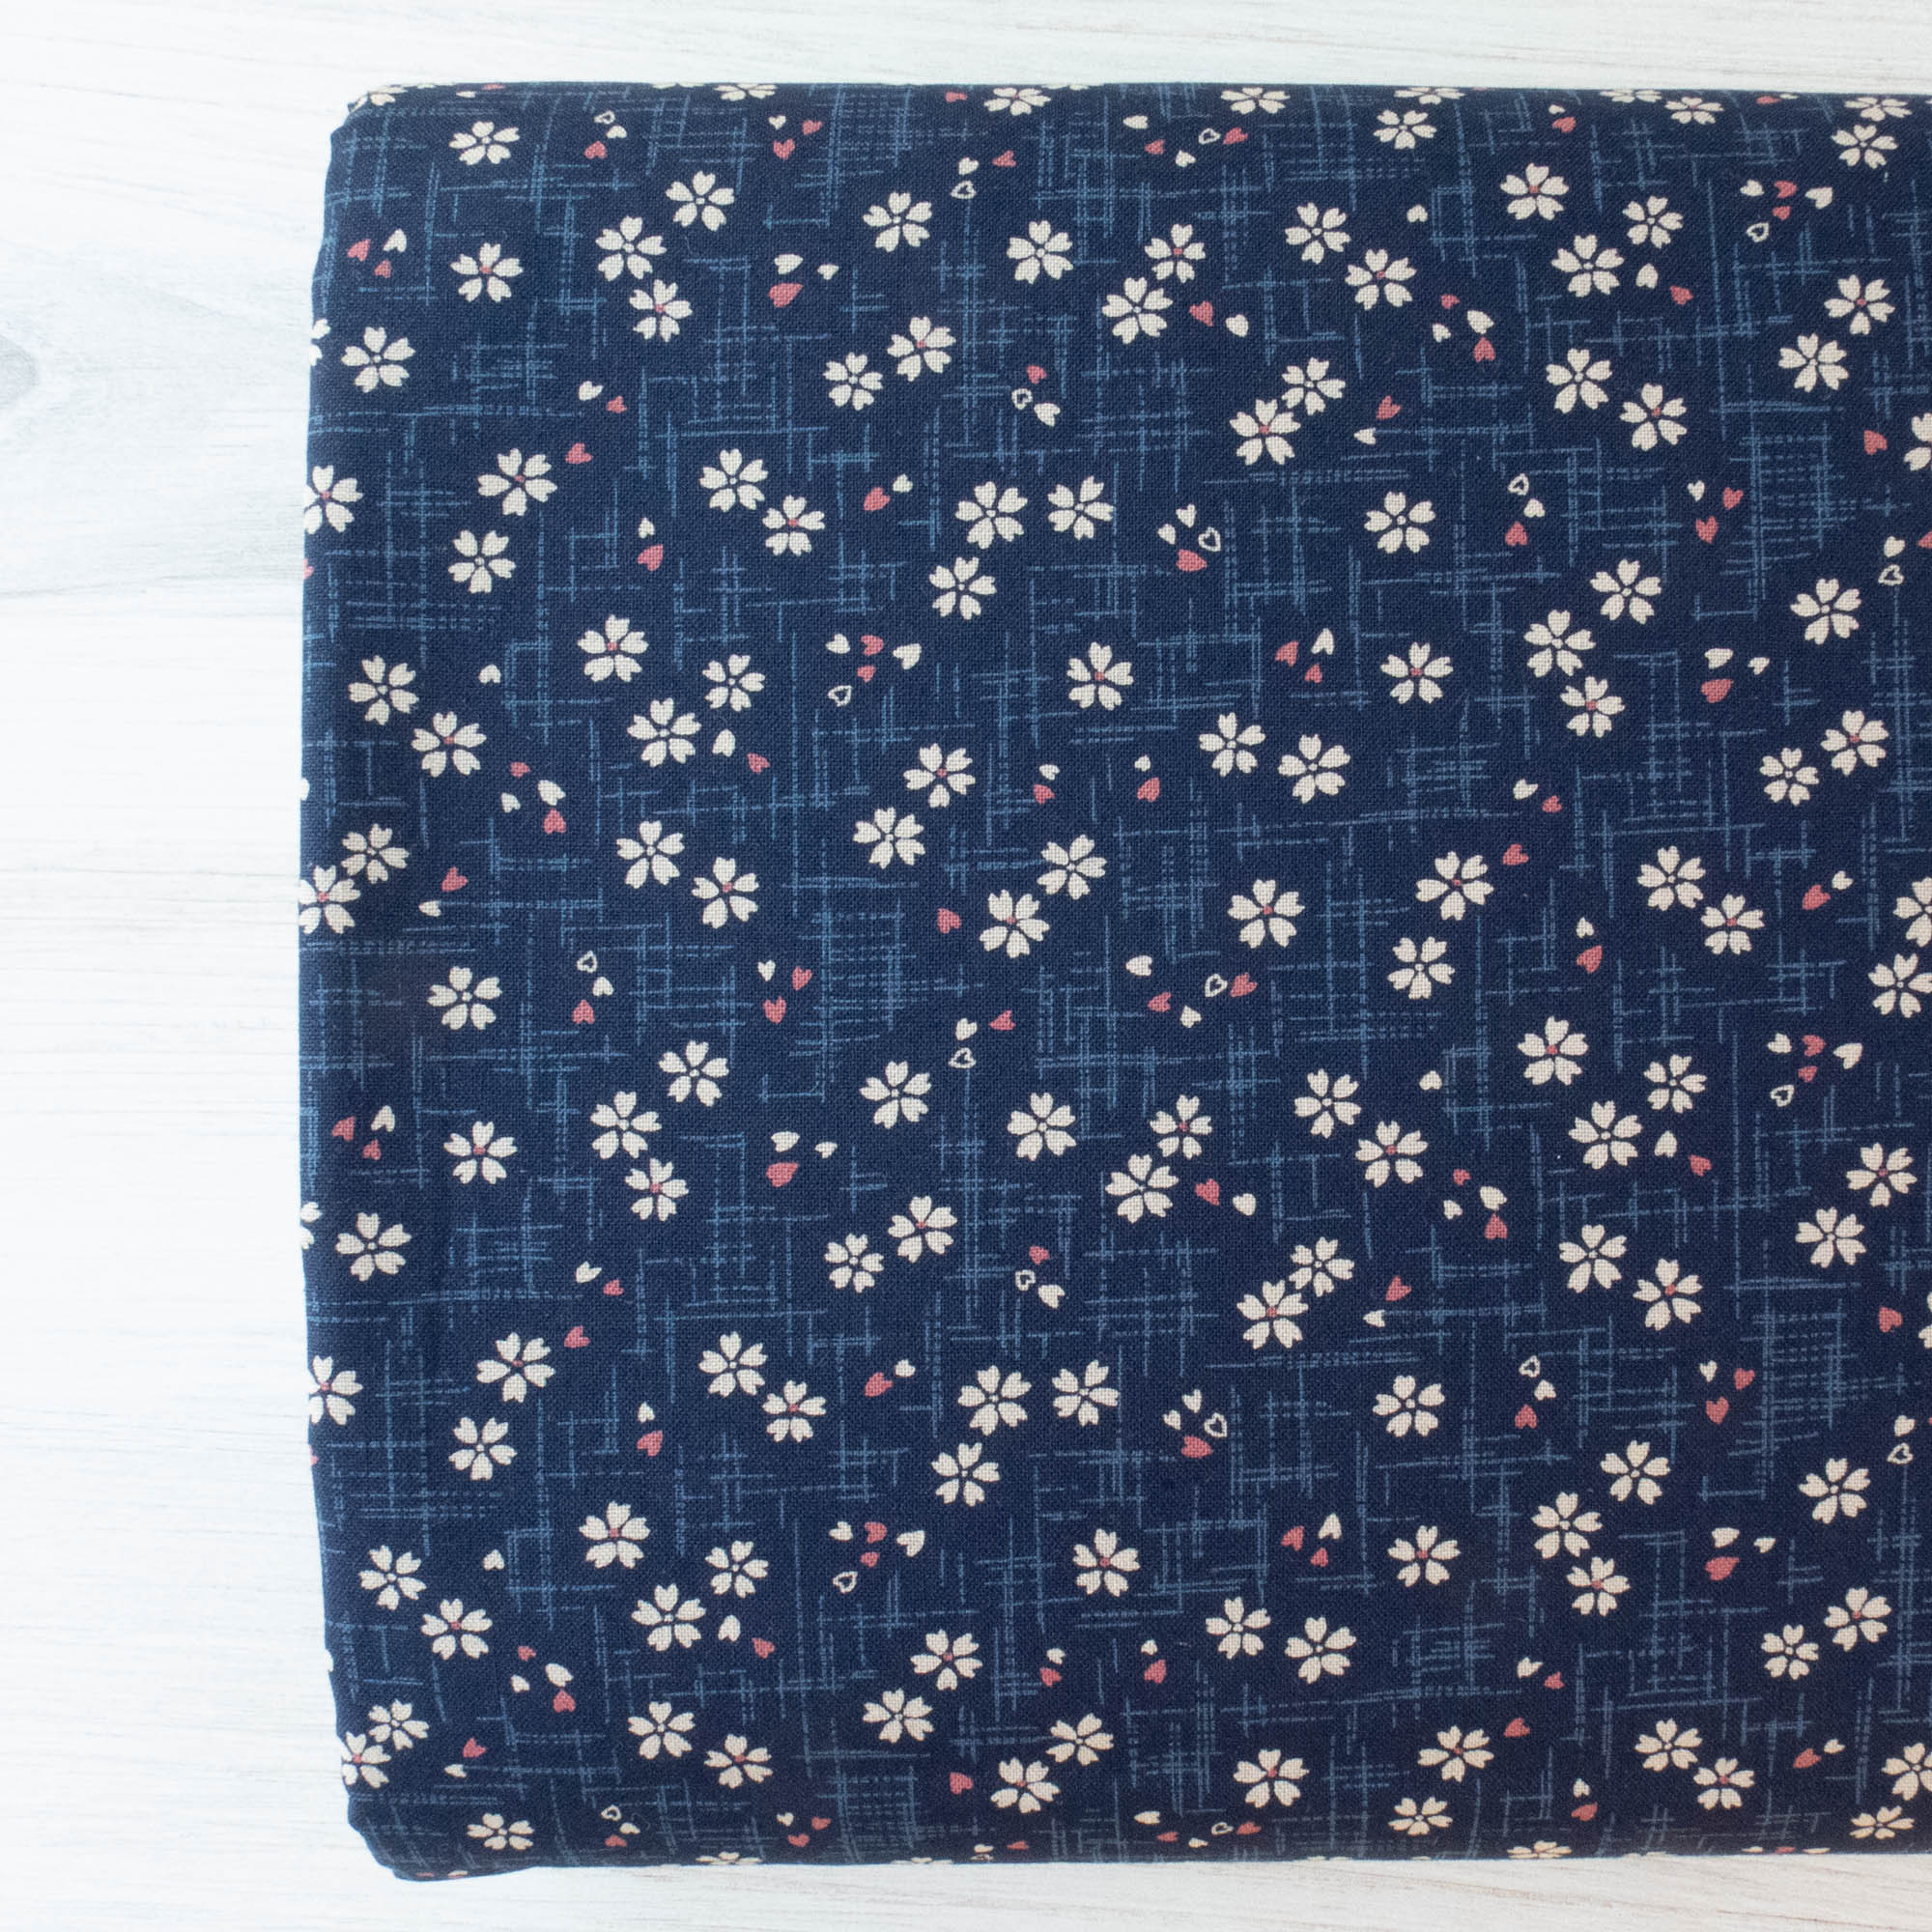 Sevenberry Kasuri : Mini Cherry Blossoms on Navy Fabric - Snuggly Monkey